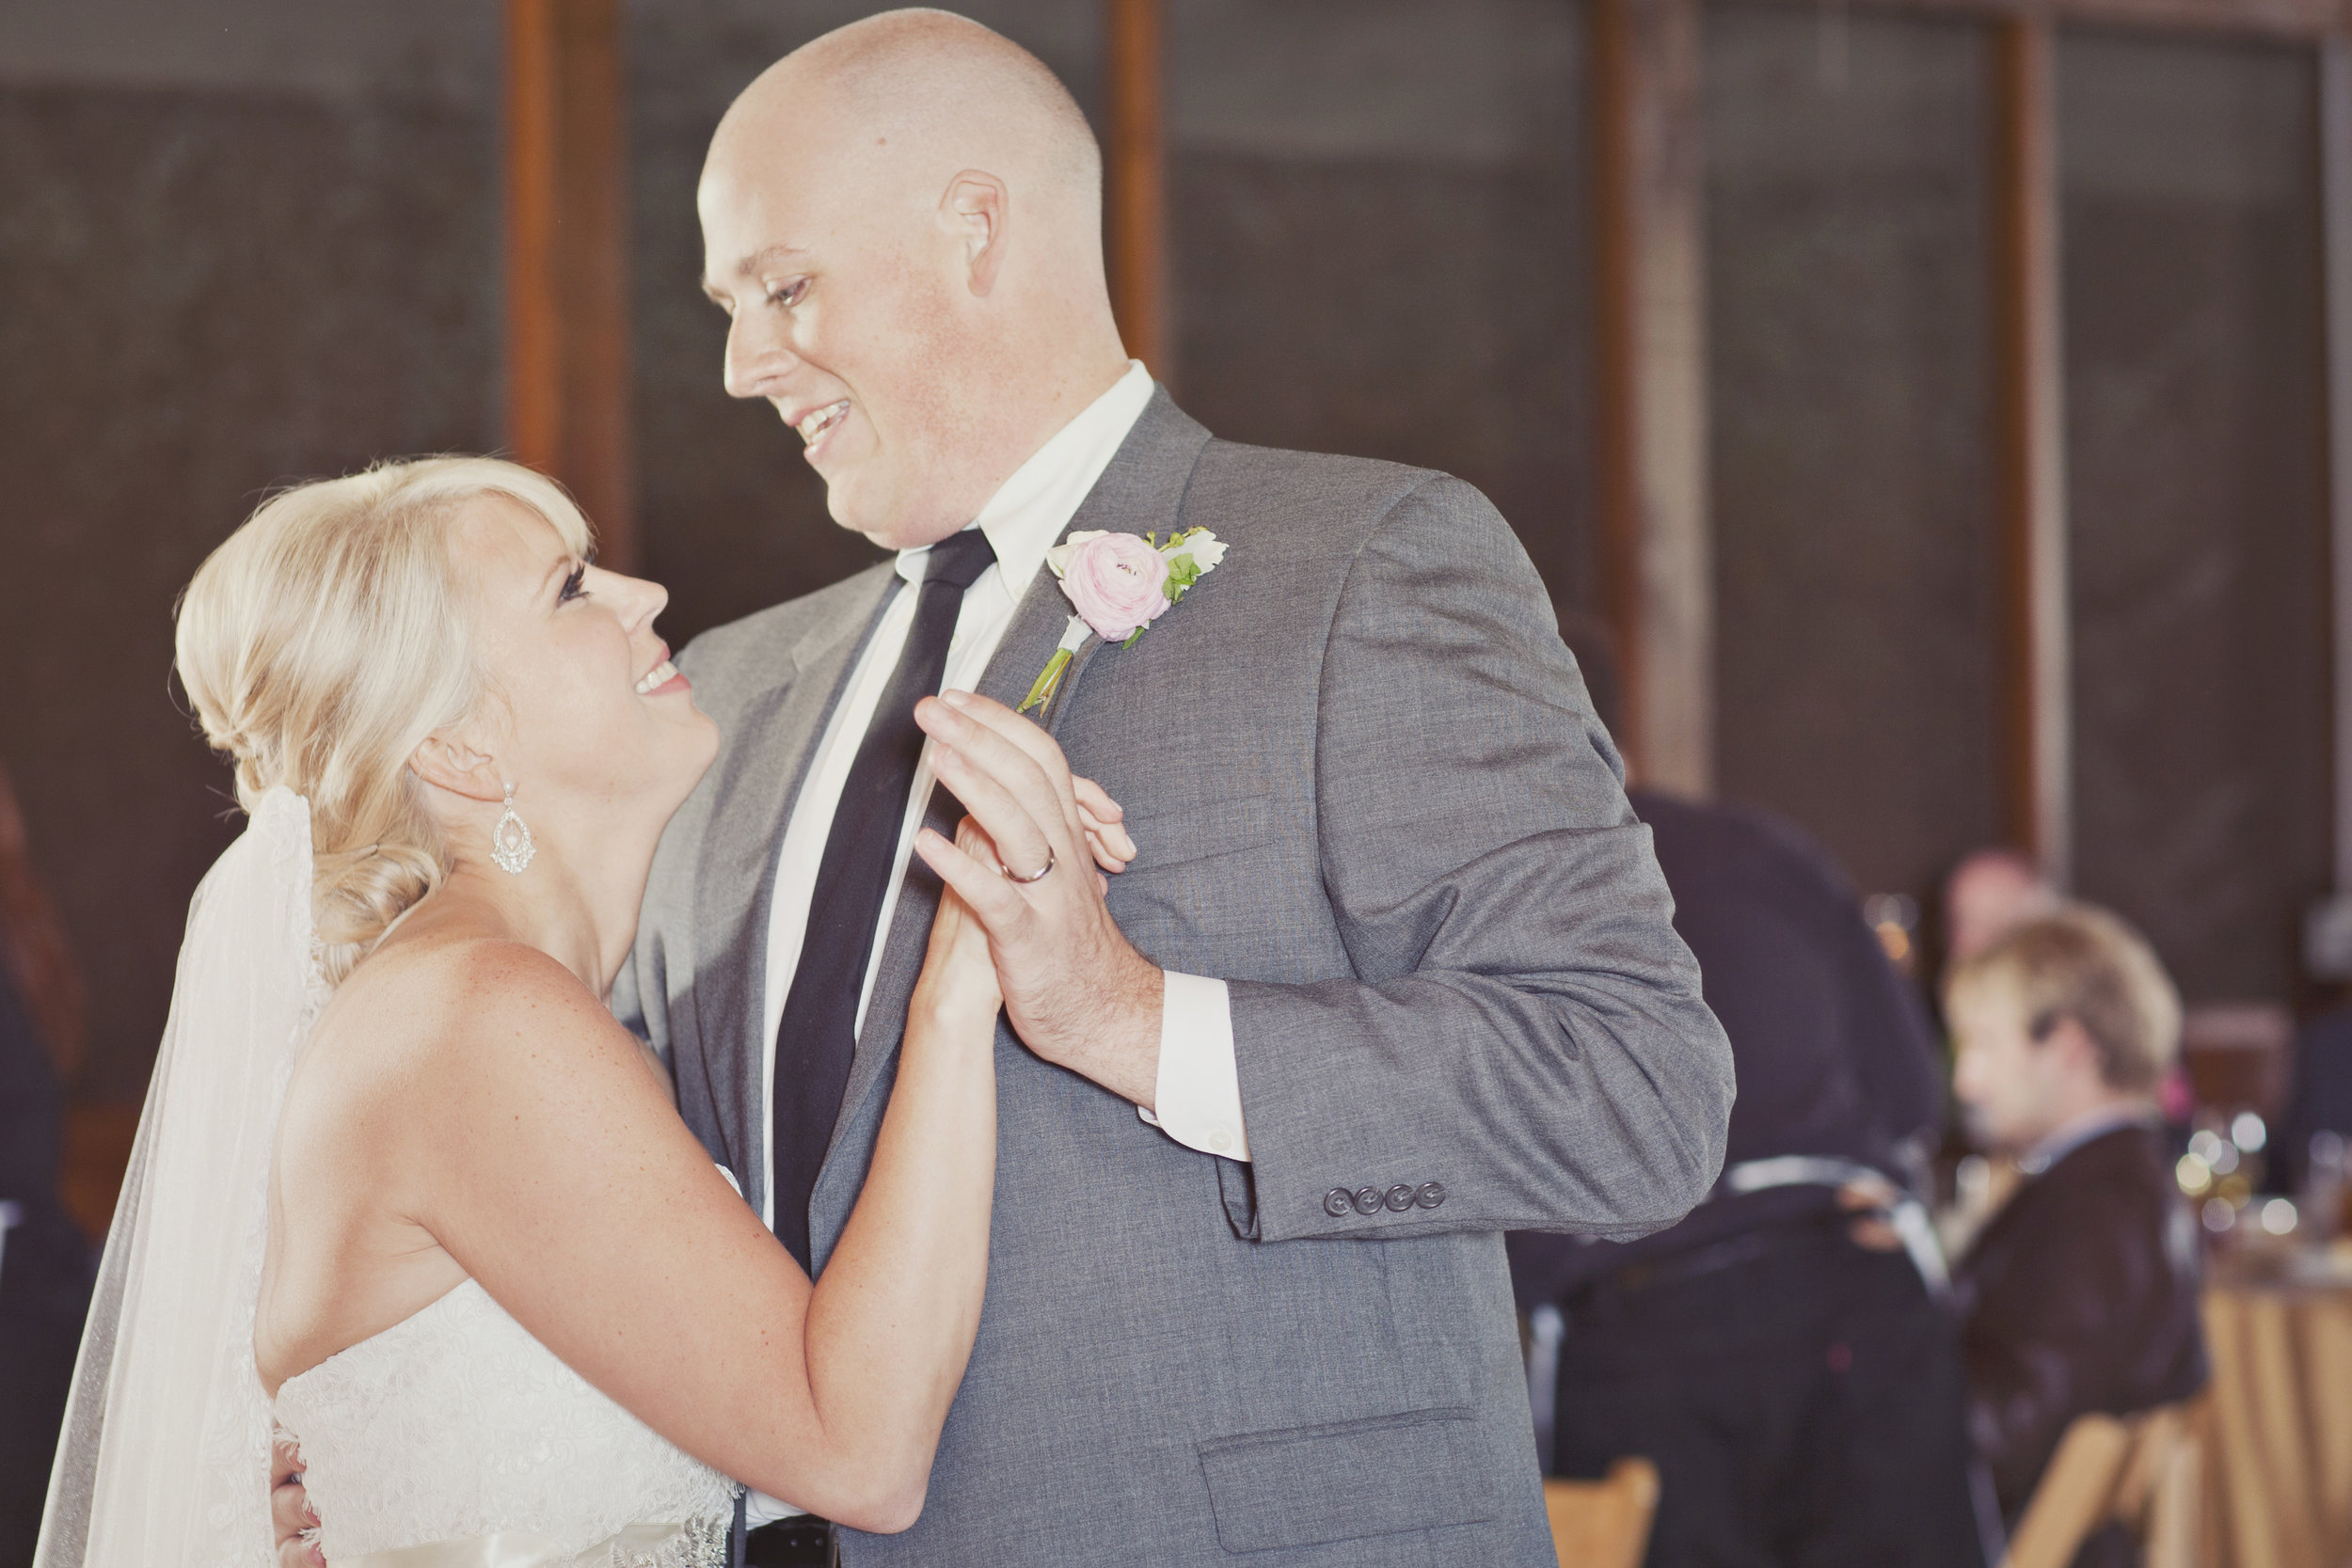 Simply-Charming-Socials_Atlanta-Wedding-Planner_Our-Labor-Of-Love_Maggie-and-Greg_31.jpg